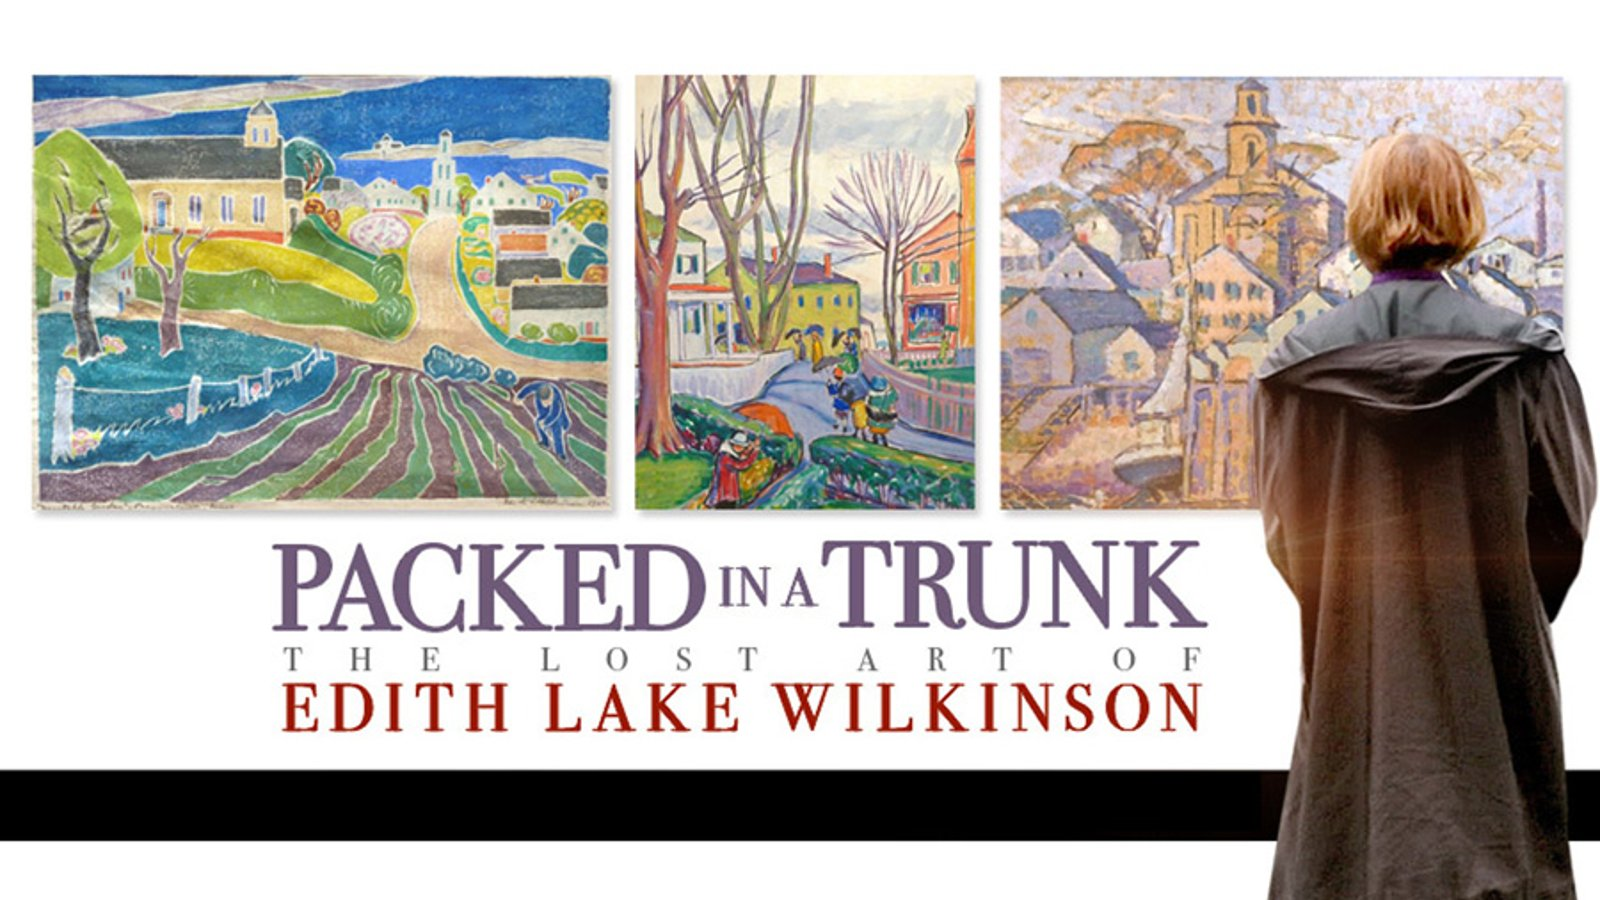 Packed in a Trunk - The Lost Art of Edith Lake Wilkinson